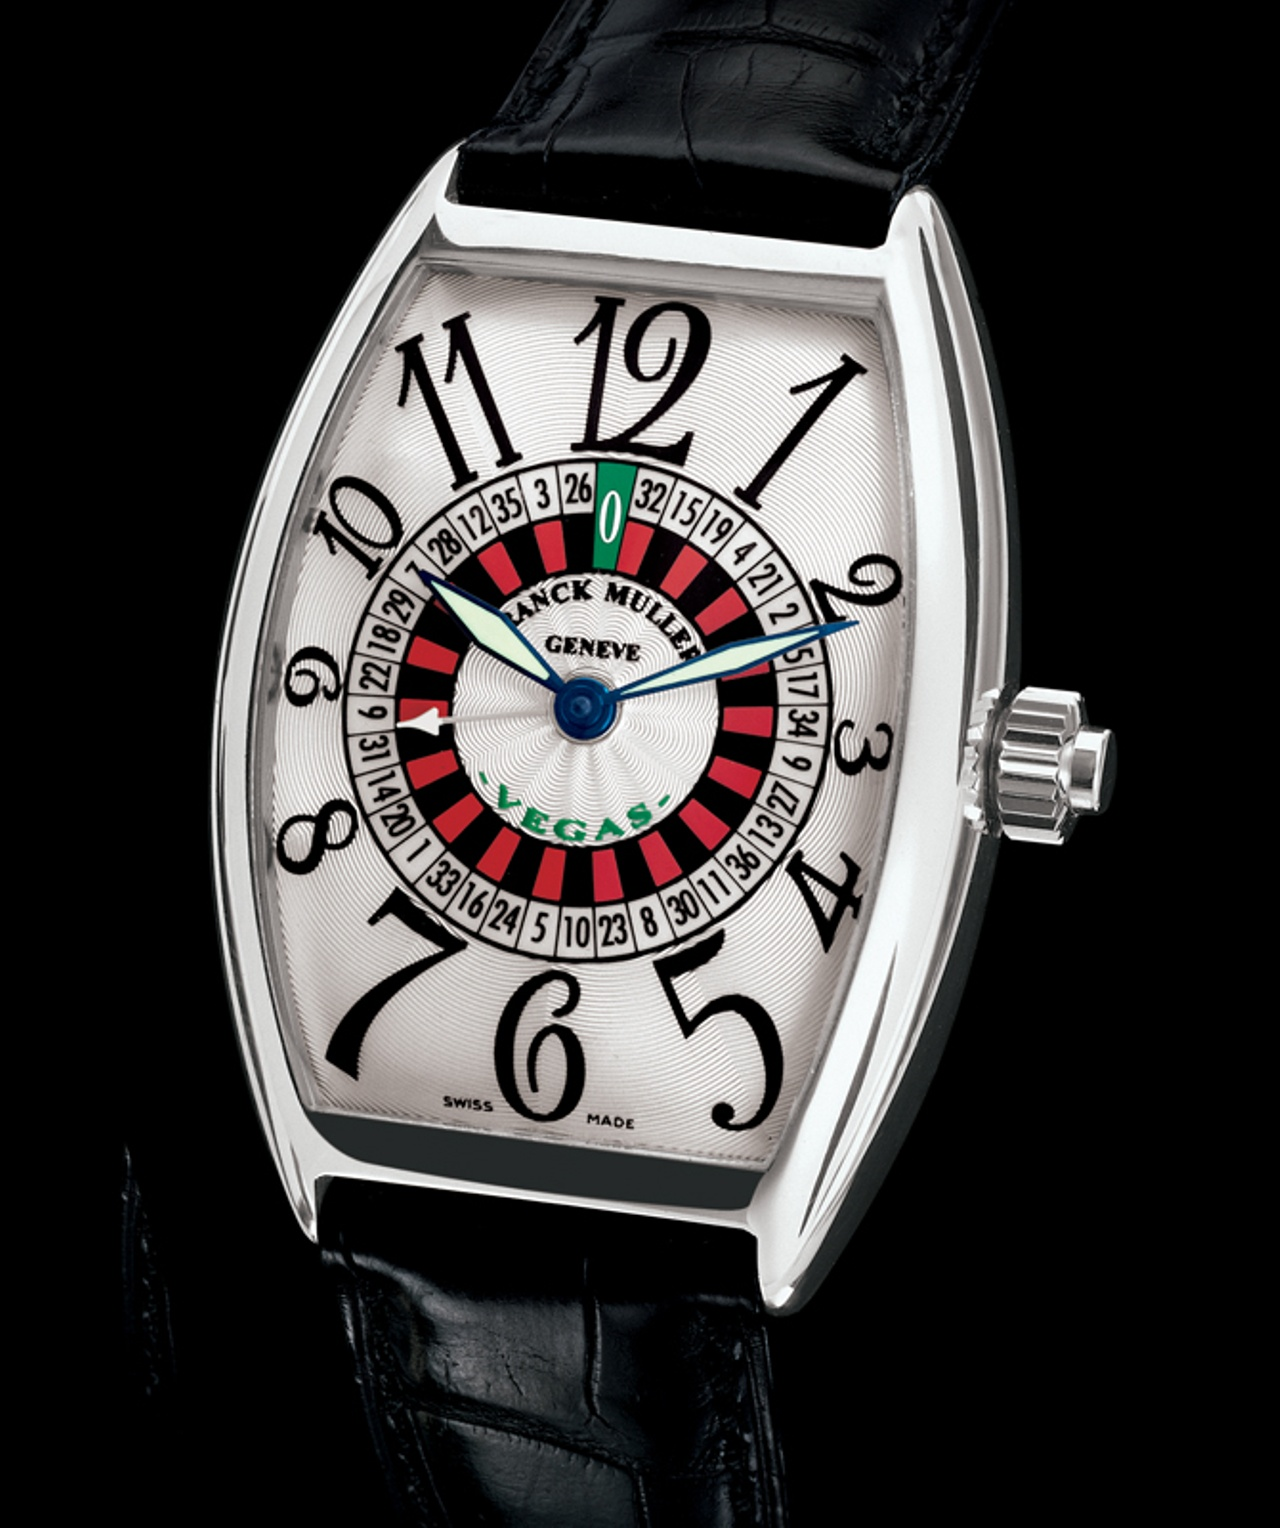 Franck muller watches los angeles for Franck muller watches